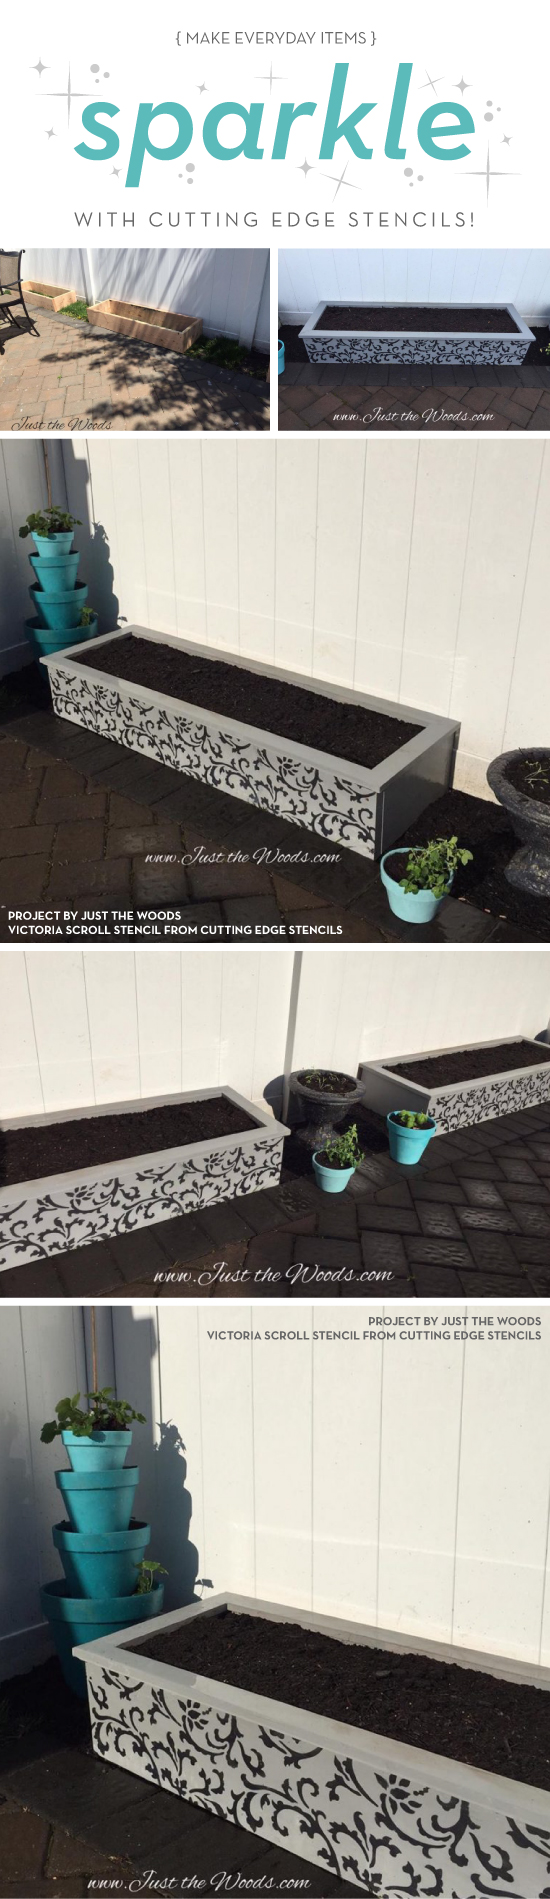 Cutting Edge Stencils shares how to make stenciled garden planters using the Victoria Scroll Stencil. http://www.cuttingedgestencils.com/victoria-scroll-wall-pattern-stencil-diy-wall-decor.html